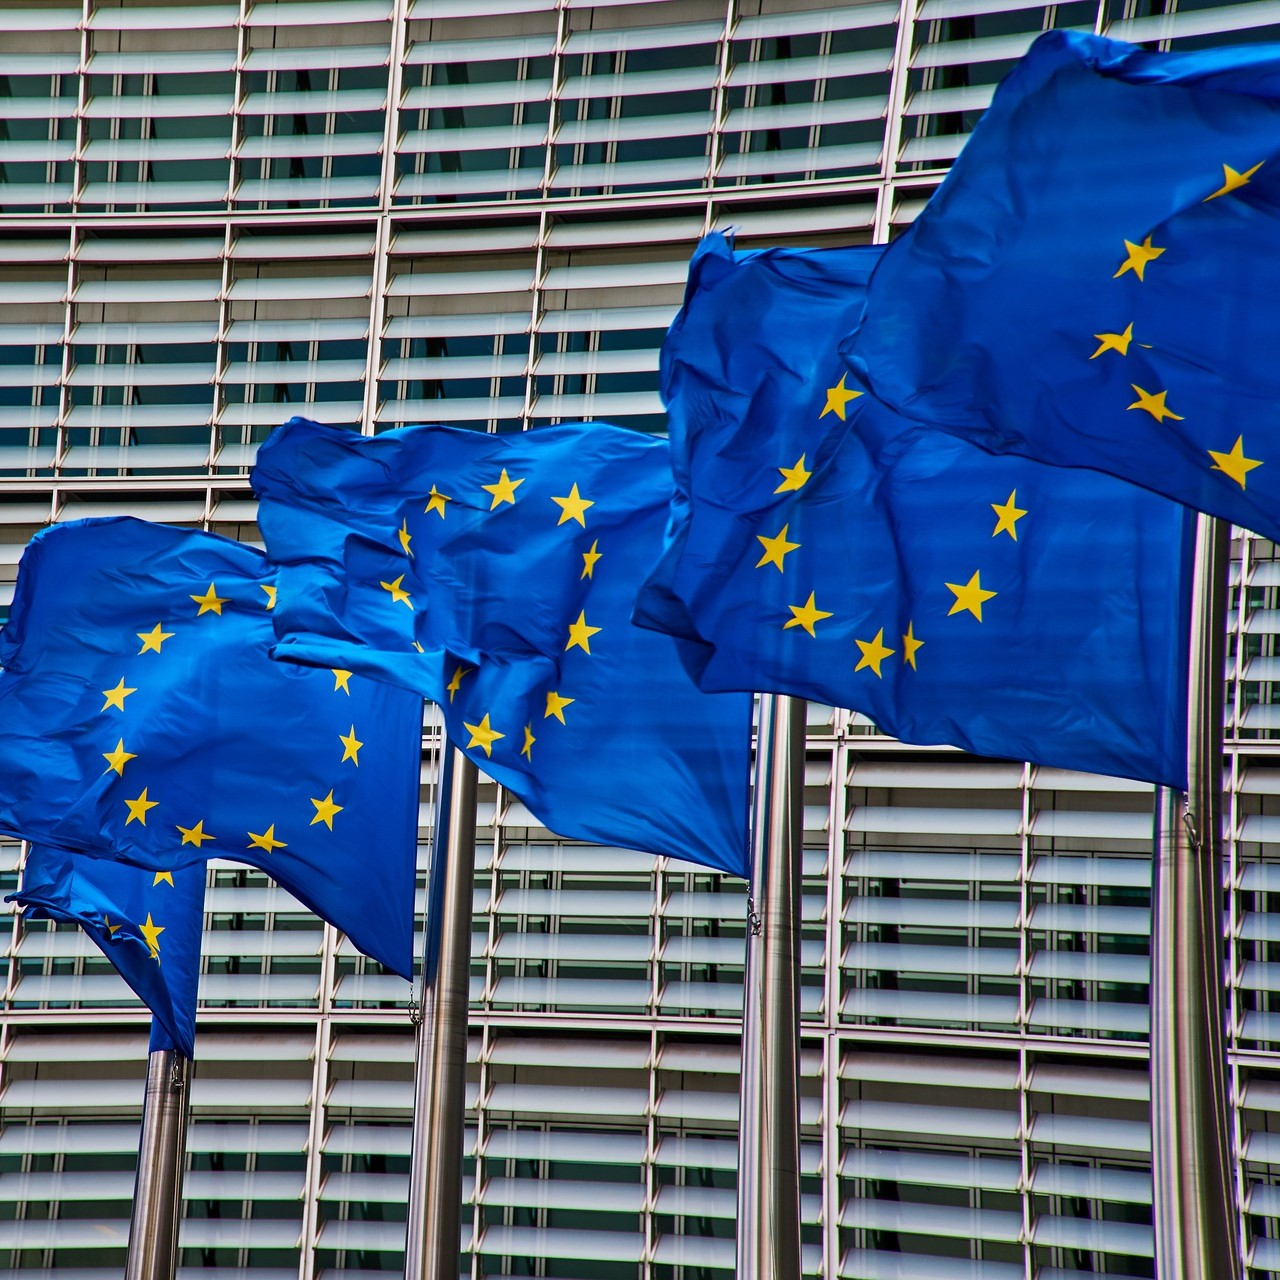 EU membership can hamper local businesses